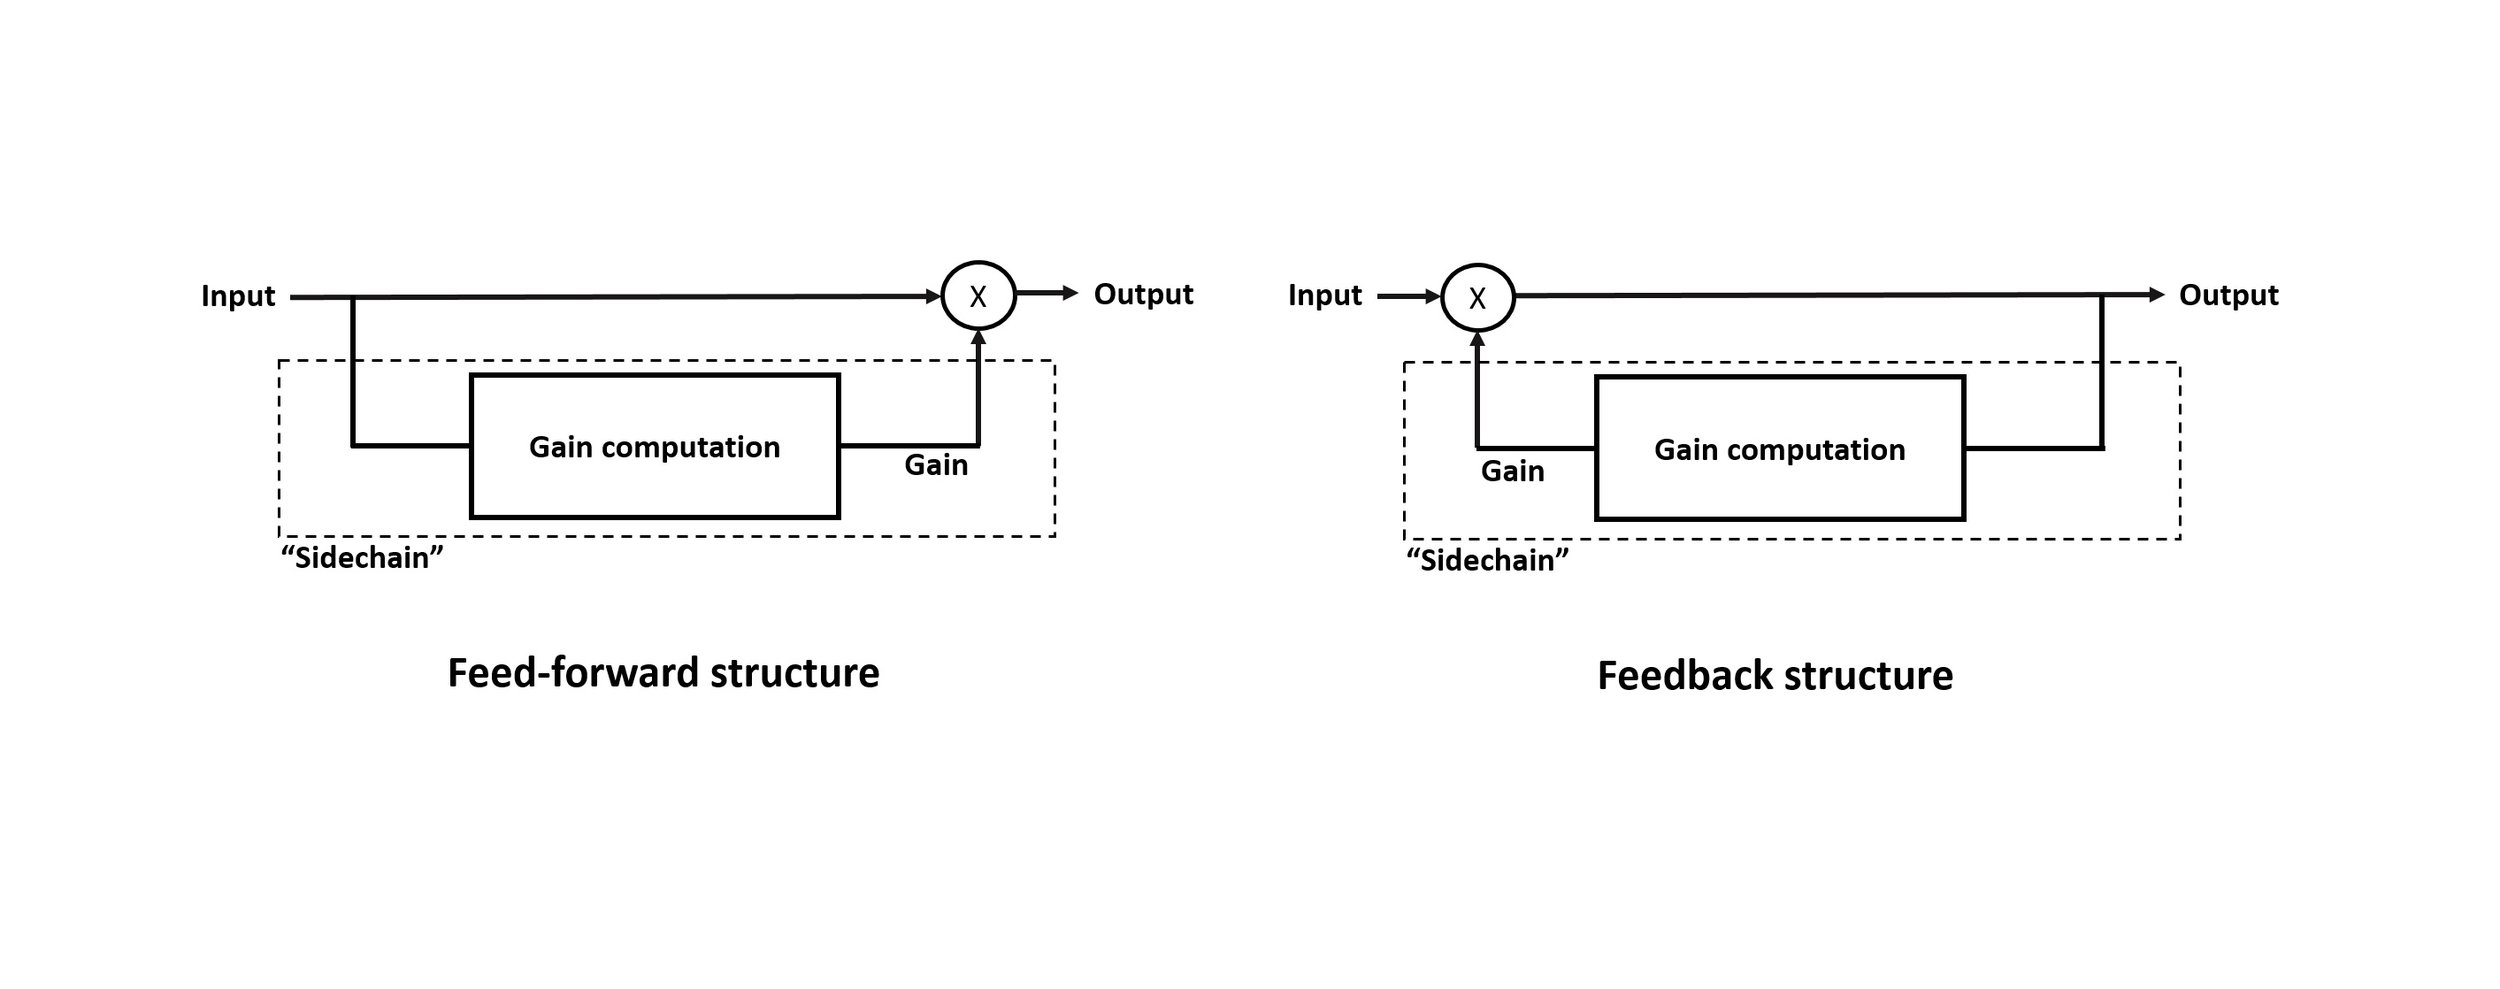 Figure 4: The two basic structures for implementing dynamic range controllers. The processing in the sidechain has been simplified to a single gain computation block for clarity.